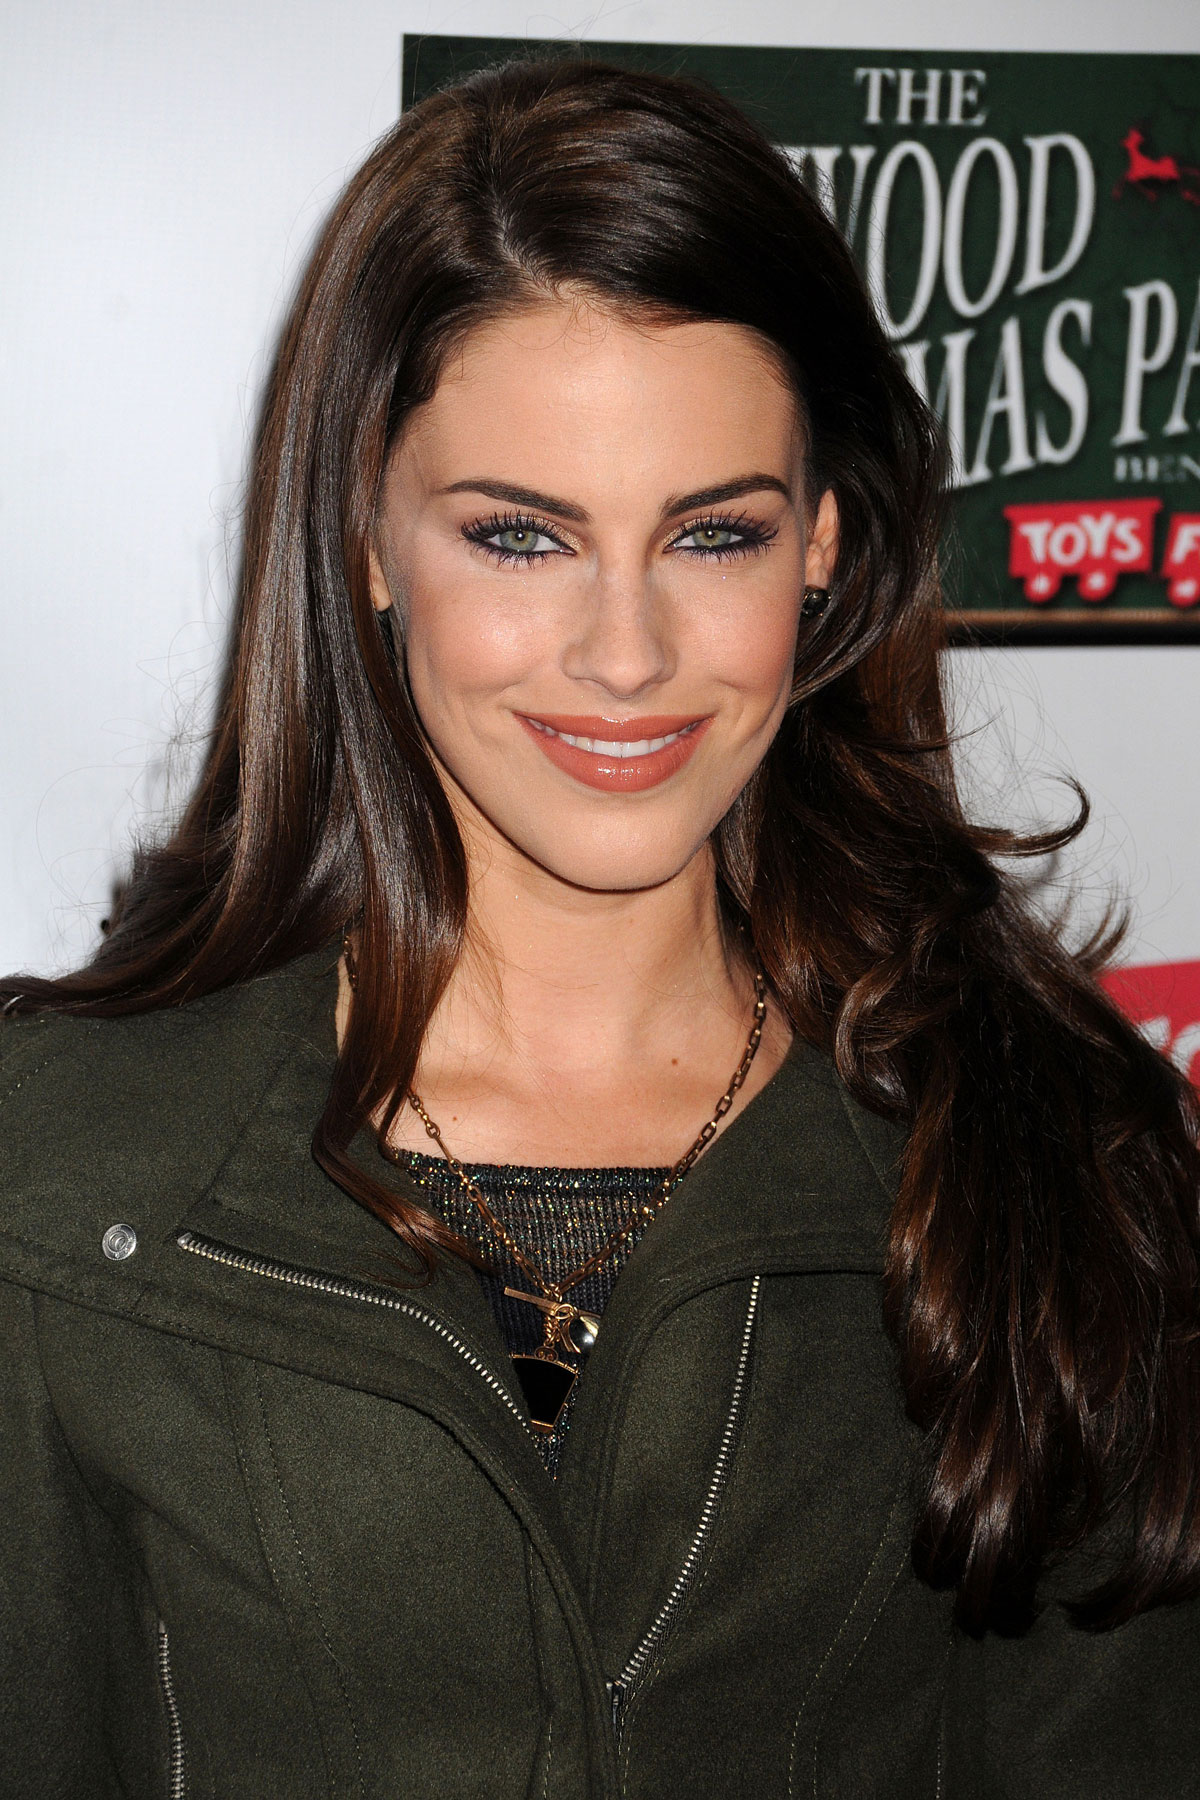 JESSICA LOWNDES at Hollywood Christmas Parade - HawtCelebs